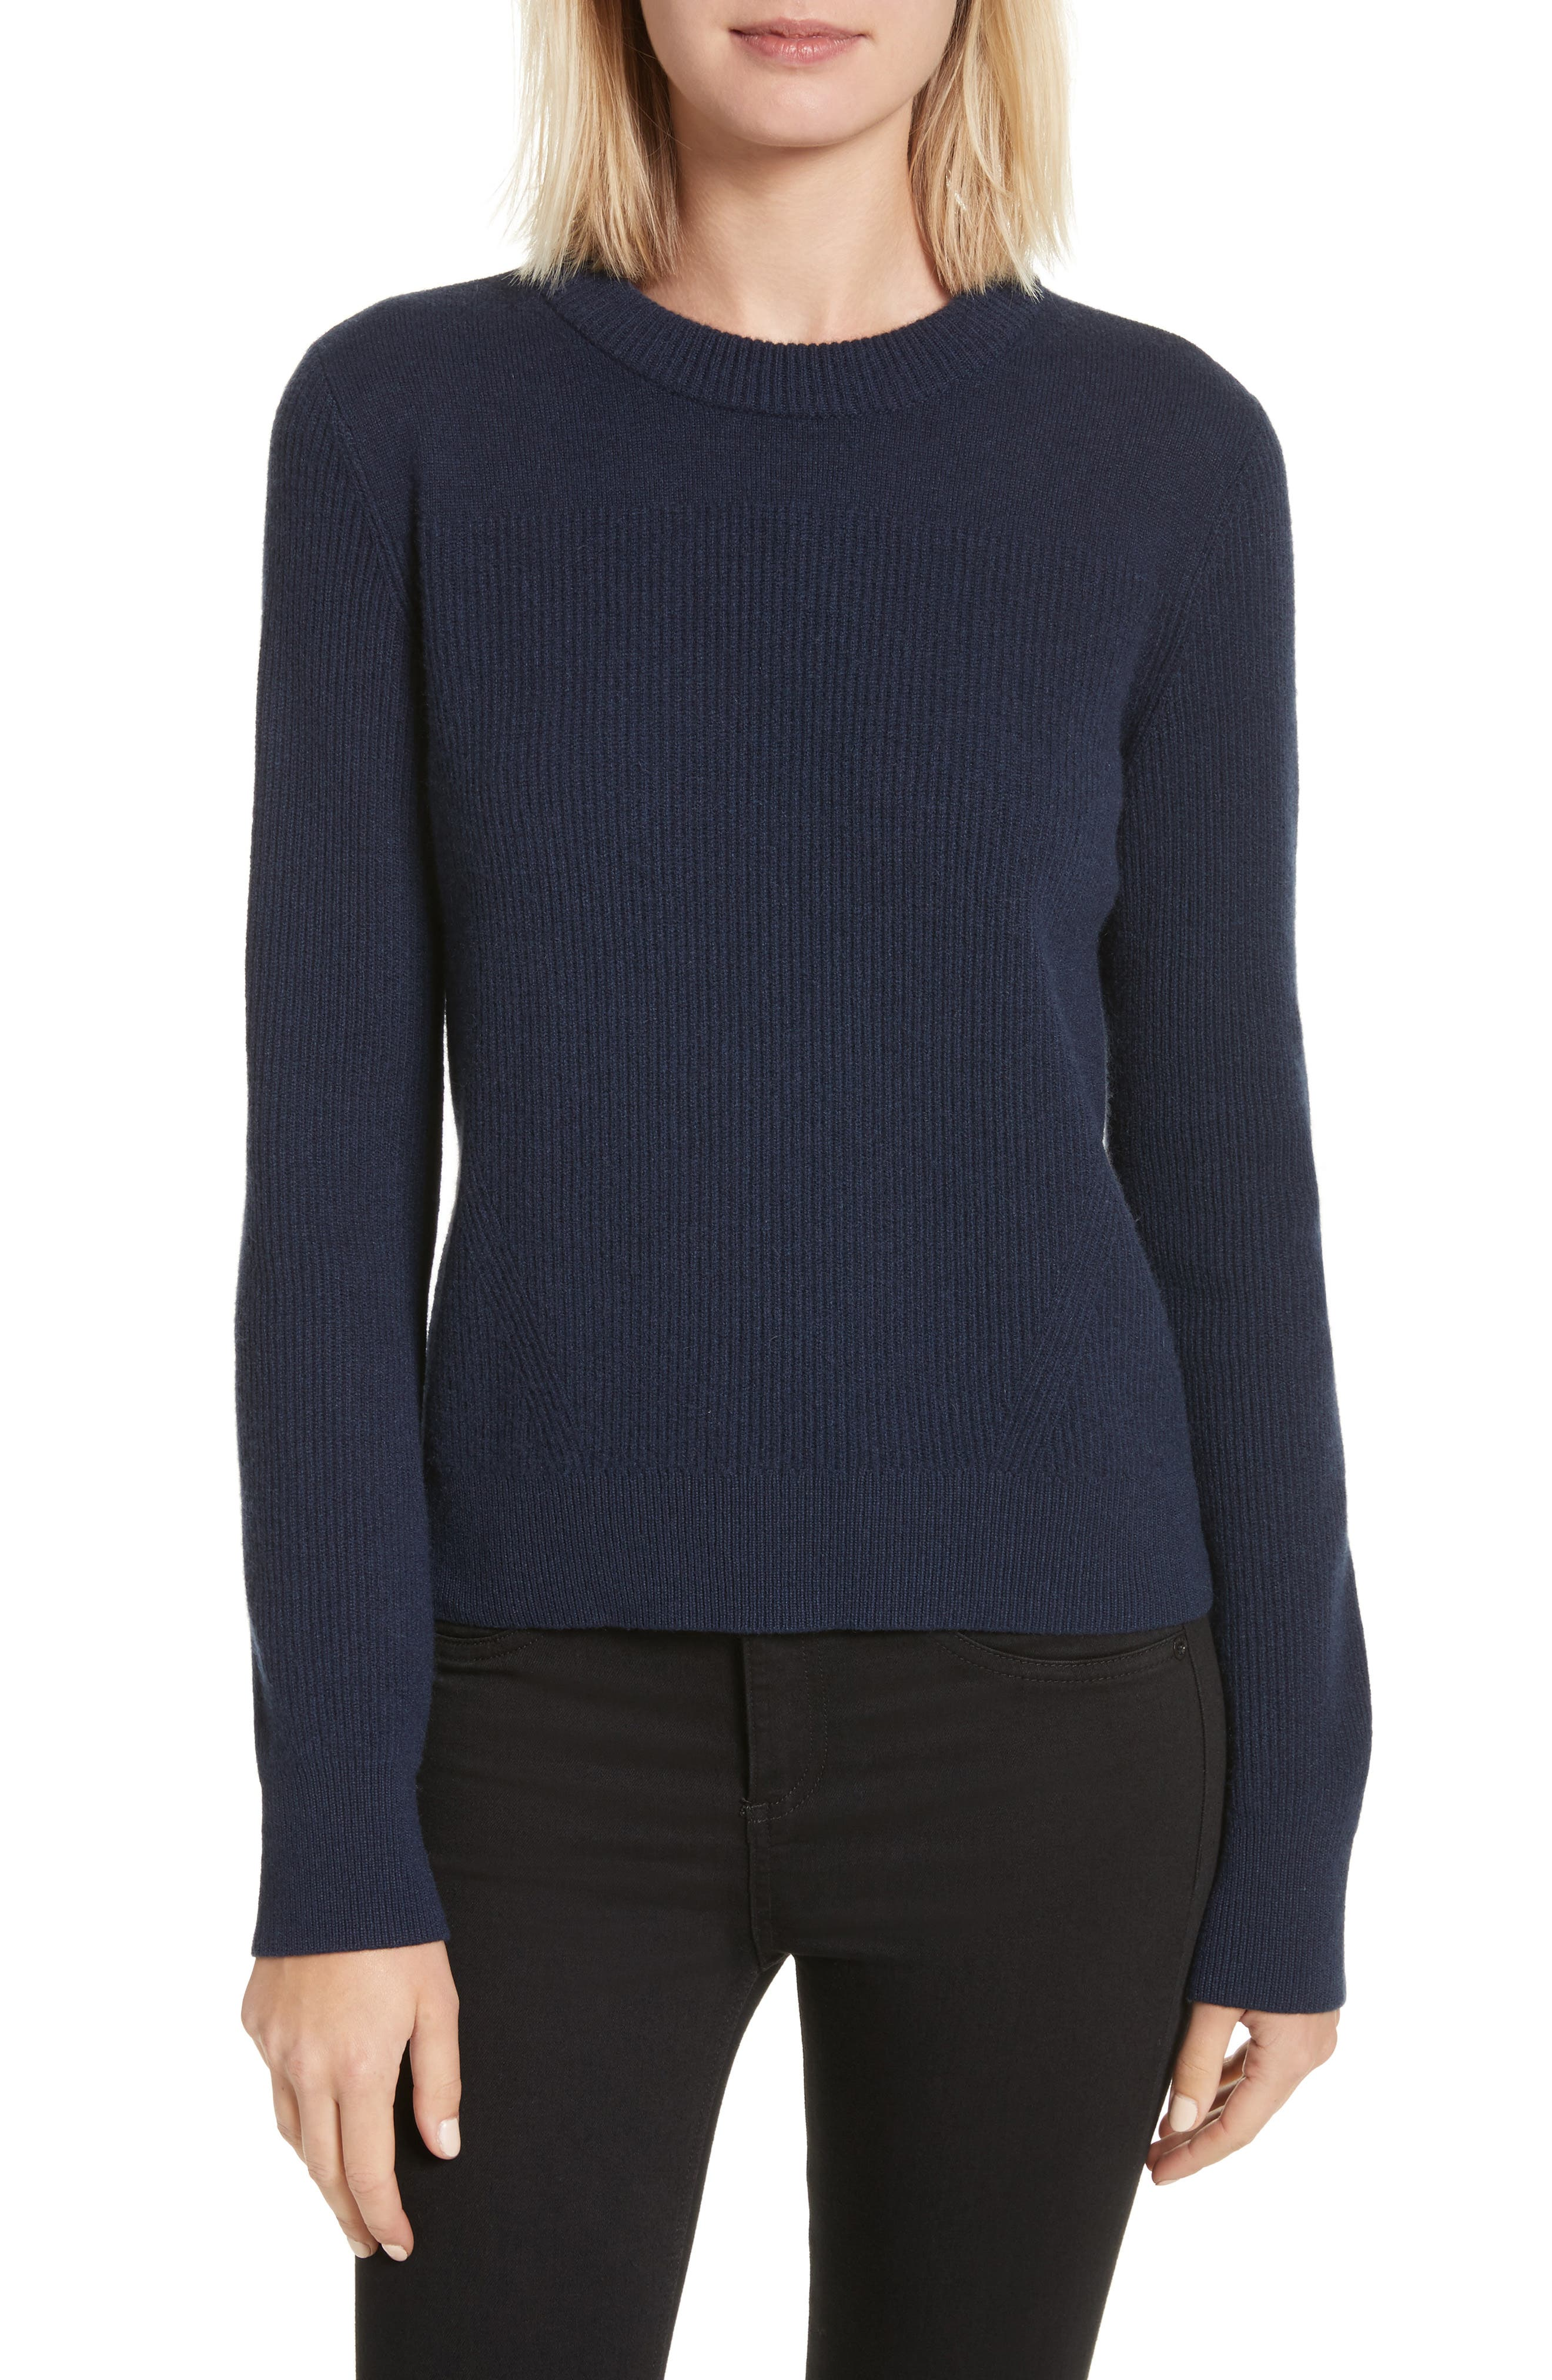 Ace Cashmere Crop Sweater,                             Main thumbnail 1, color,                             Navy